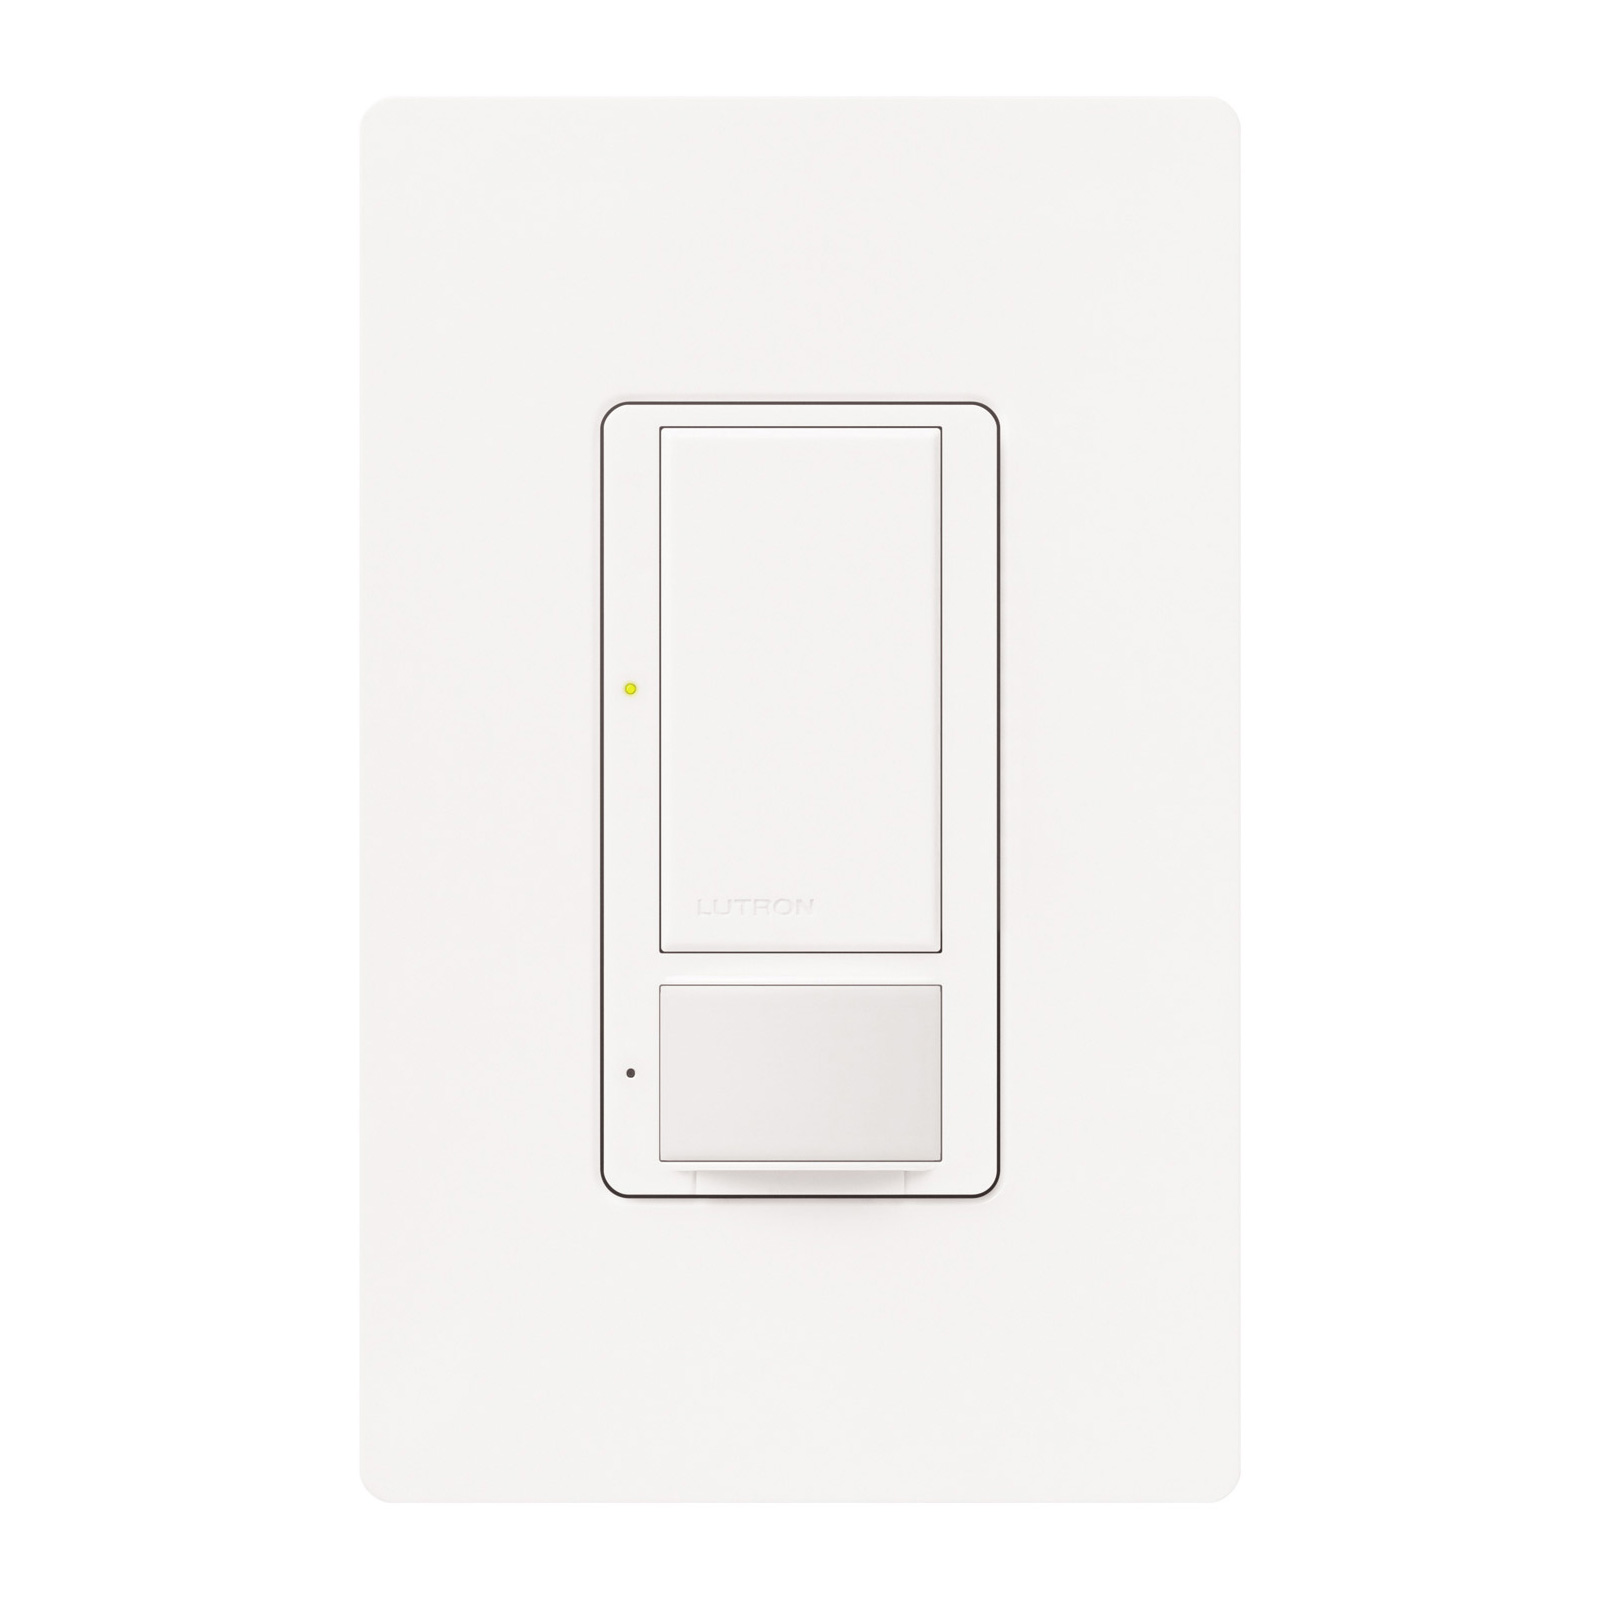 Occupancy Sensor Light